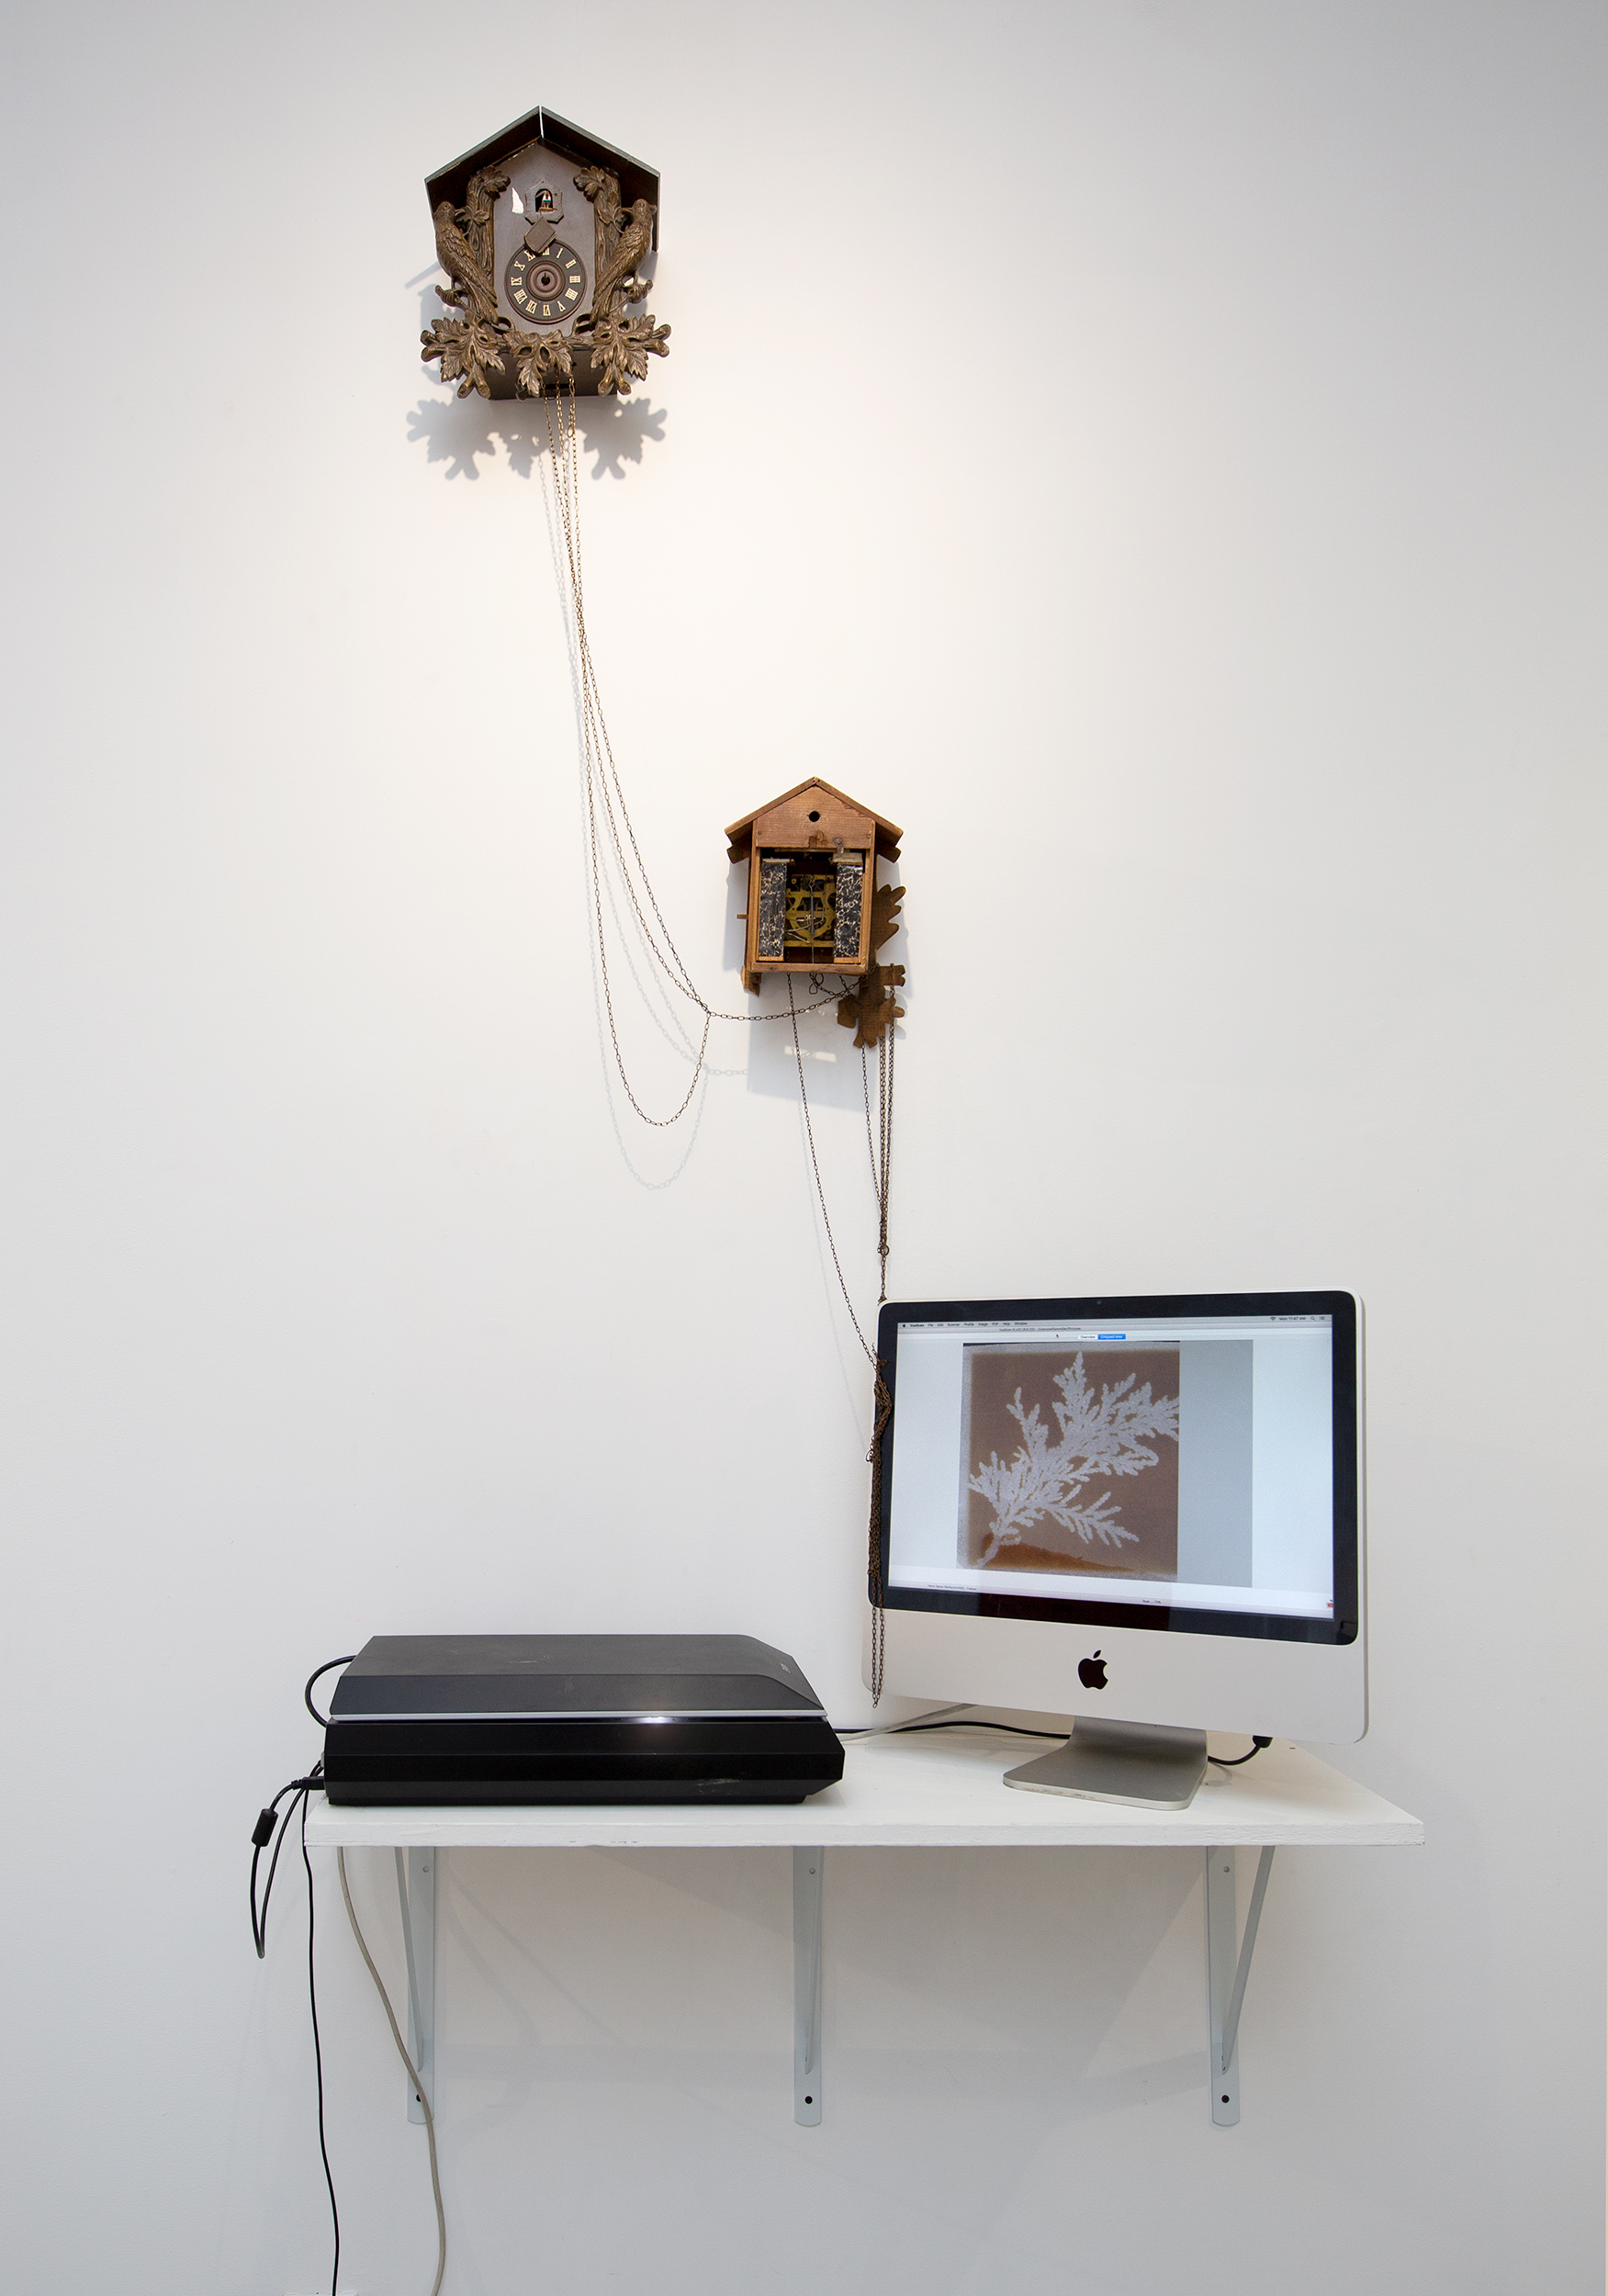 Making the Transitory Impermanent, Making the Fugitive Ephemeral, Making the Interim Provisional,  2018, scanner, desktop computer, calotype, electric chords, cuckoo clocks.